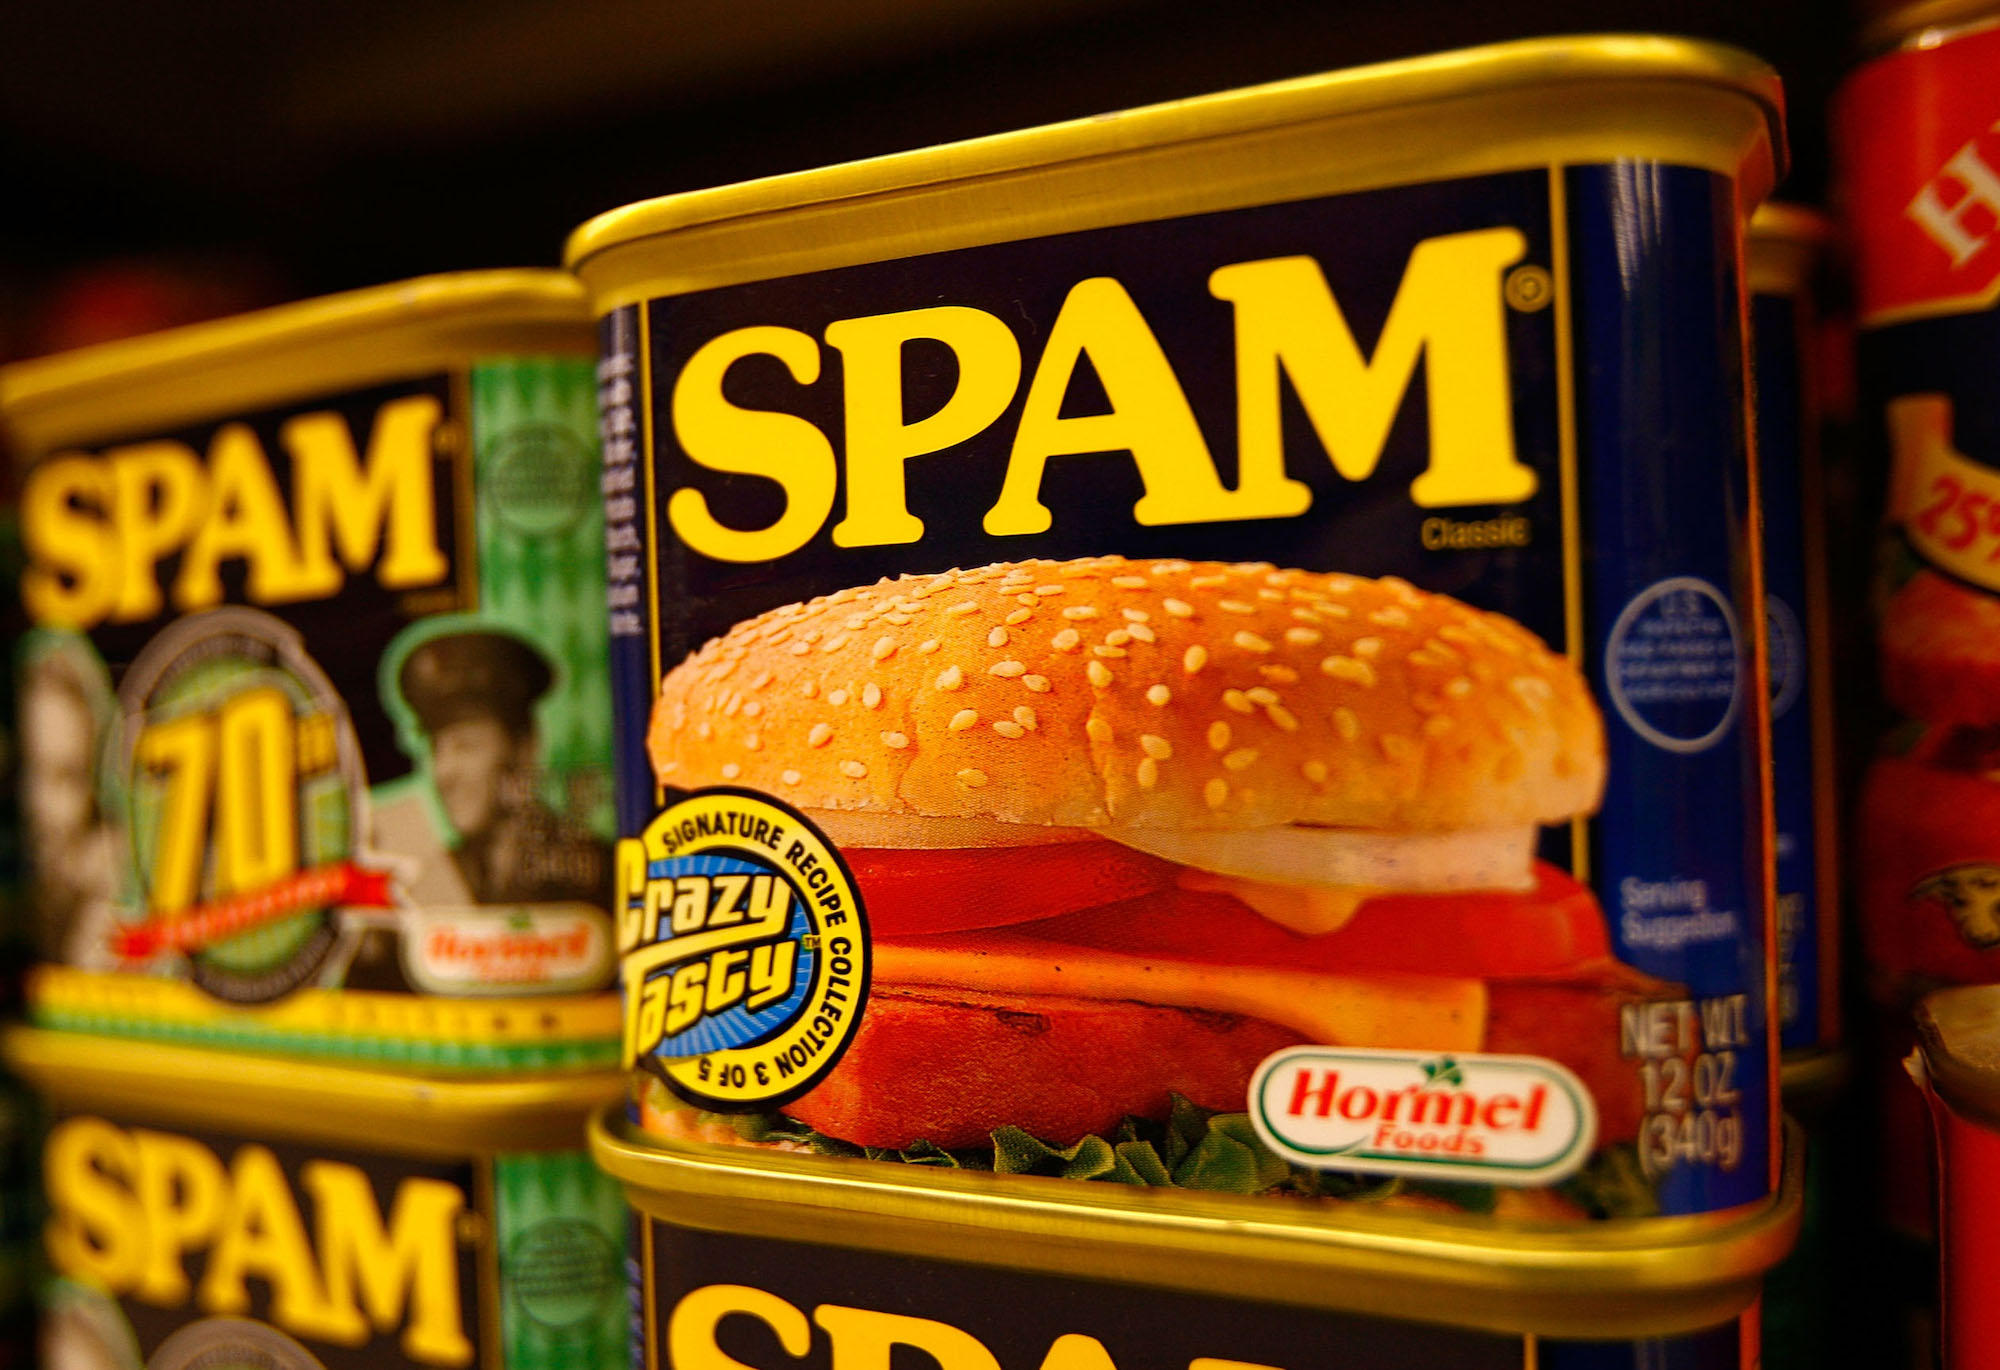 Spam recall: Hormel recalls more than 220,000 pounds of Spam, canned